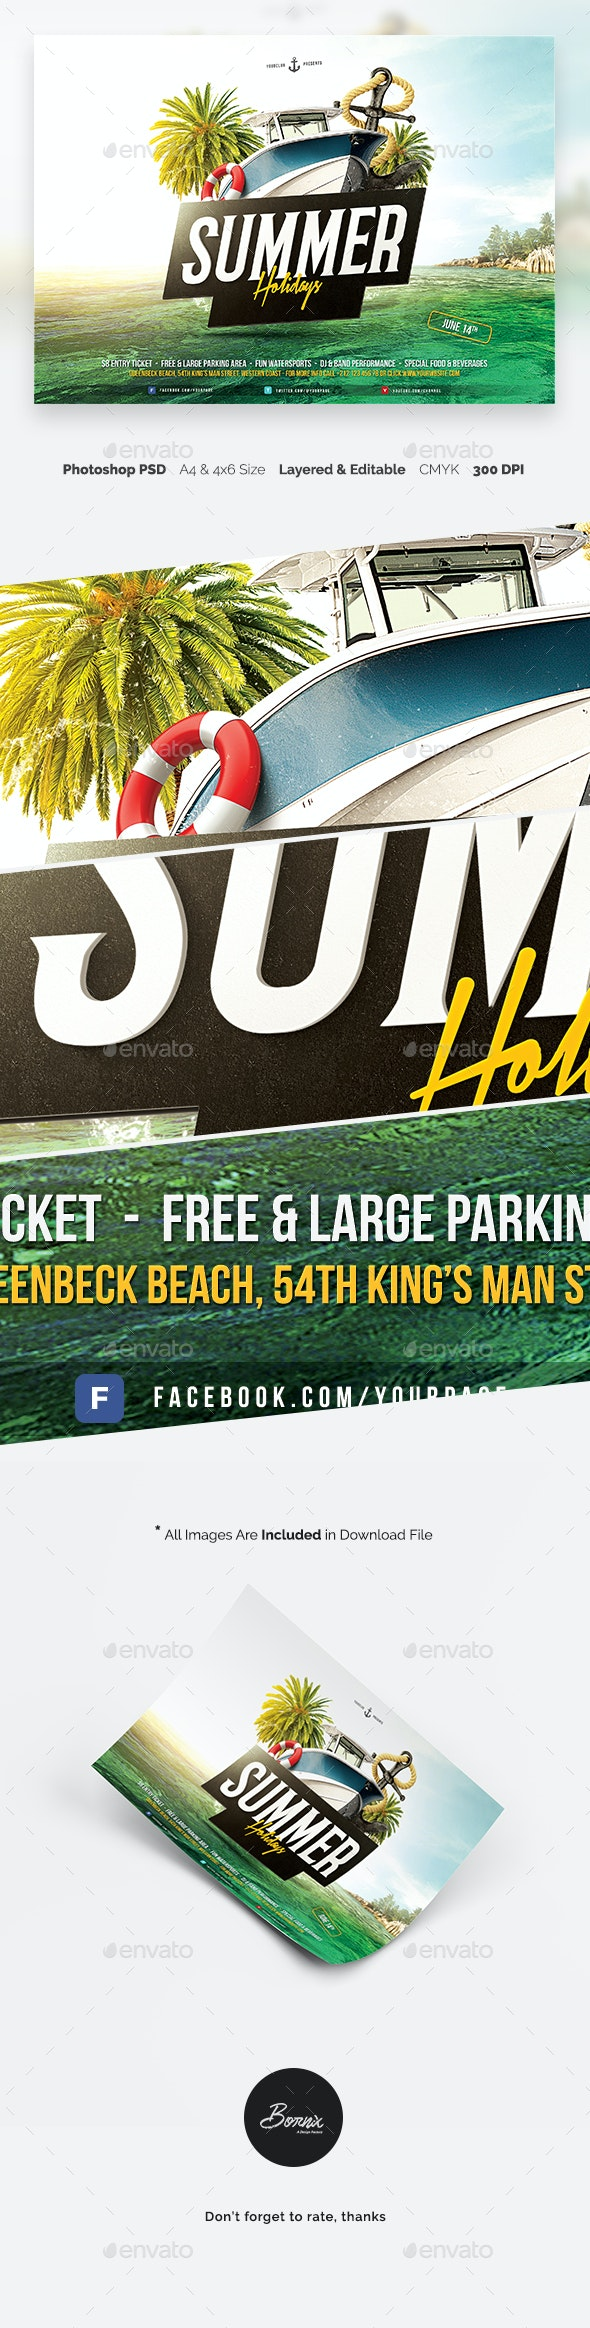 Summer Holidays Flyer Template - Holidays Events